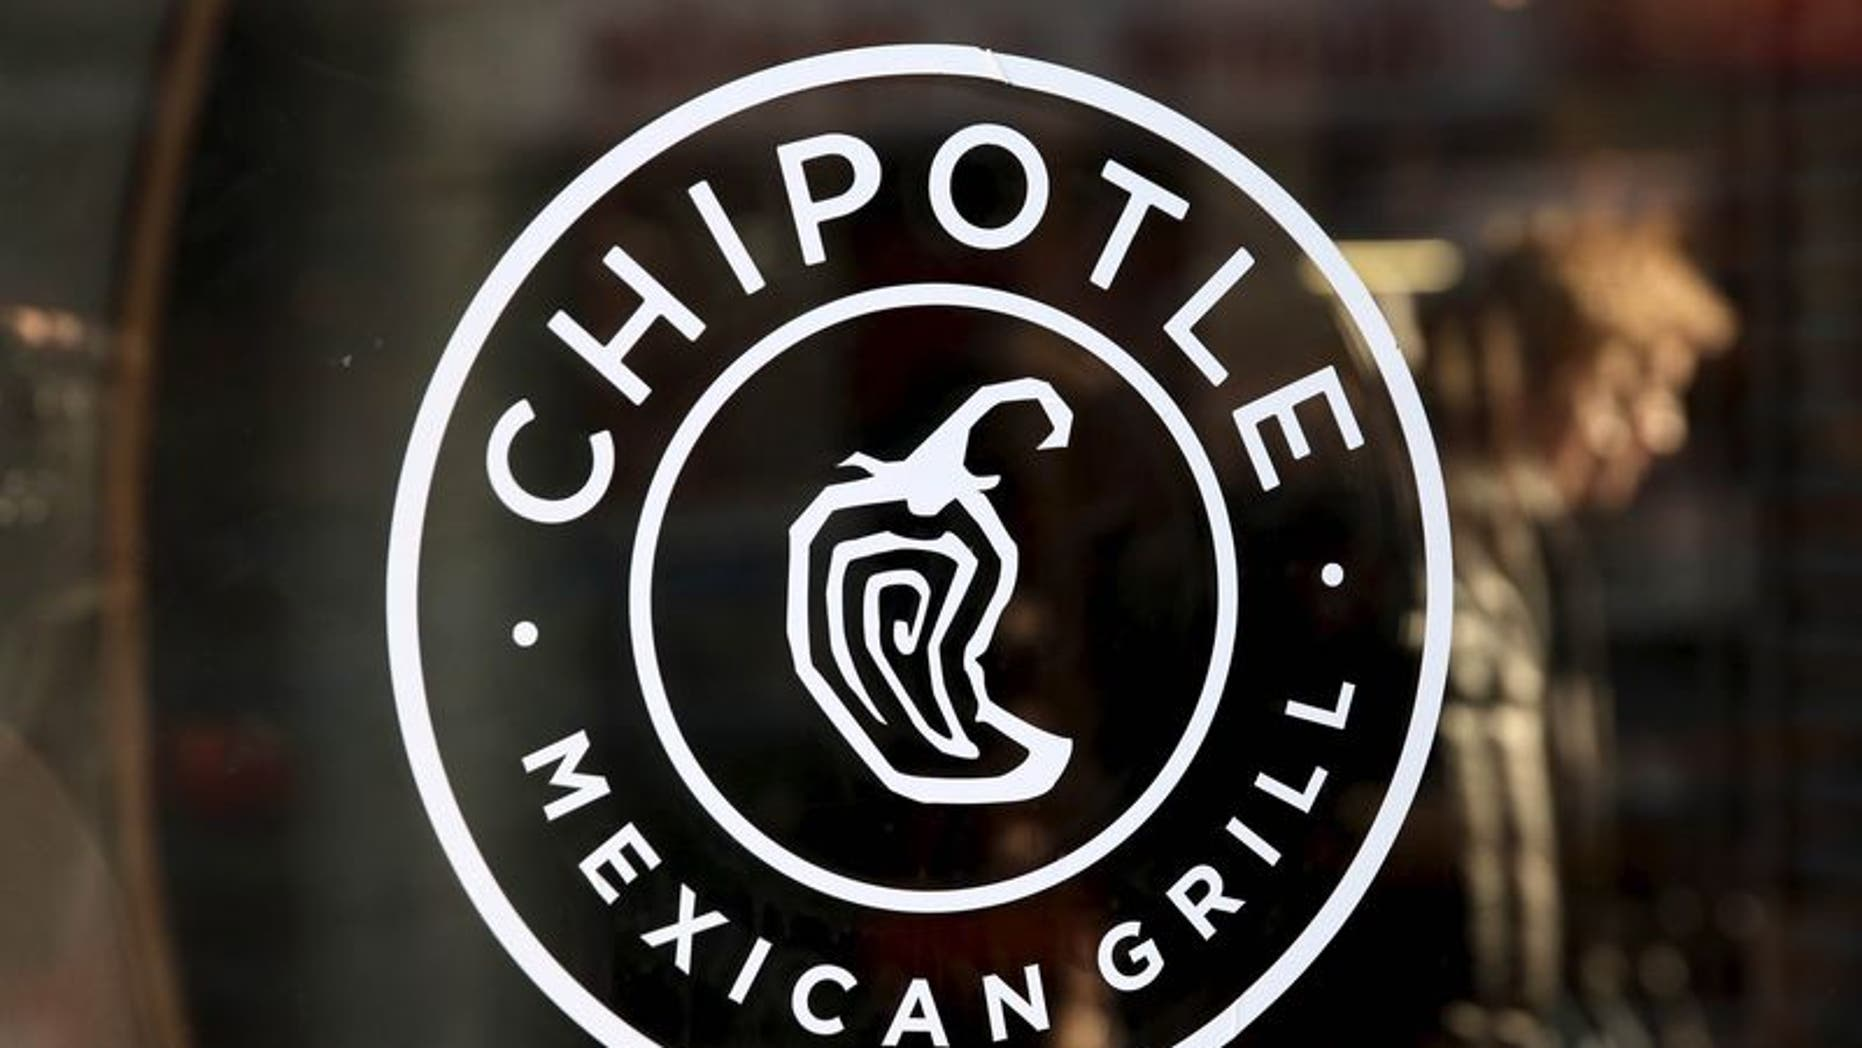 A logo of Chipotle Mexican Grill is seen on a store entrance in Manhattan, New York in this November 23, 2015 file photo.  REUTERS/Andrew Kelly/Files